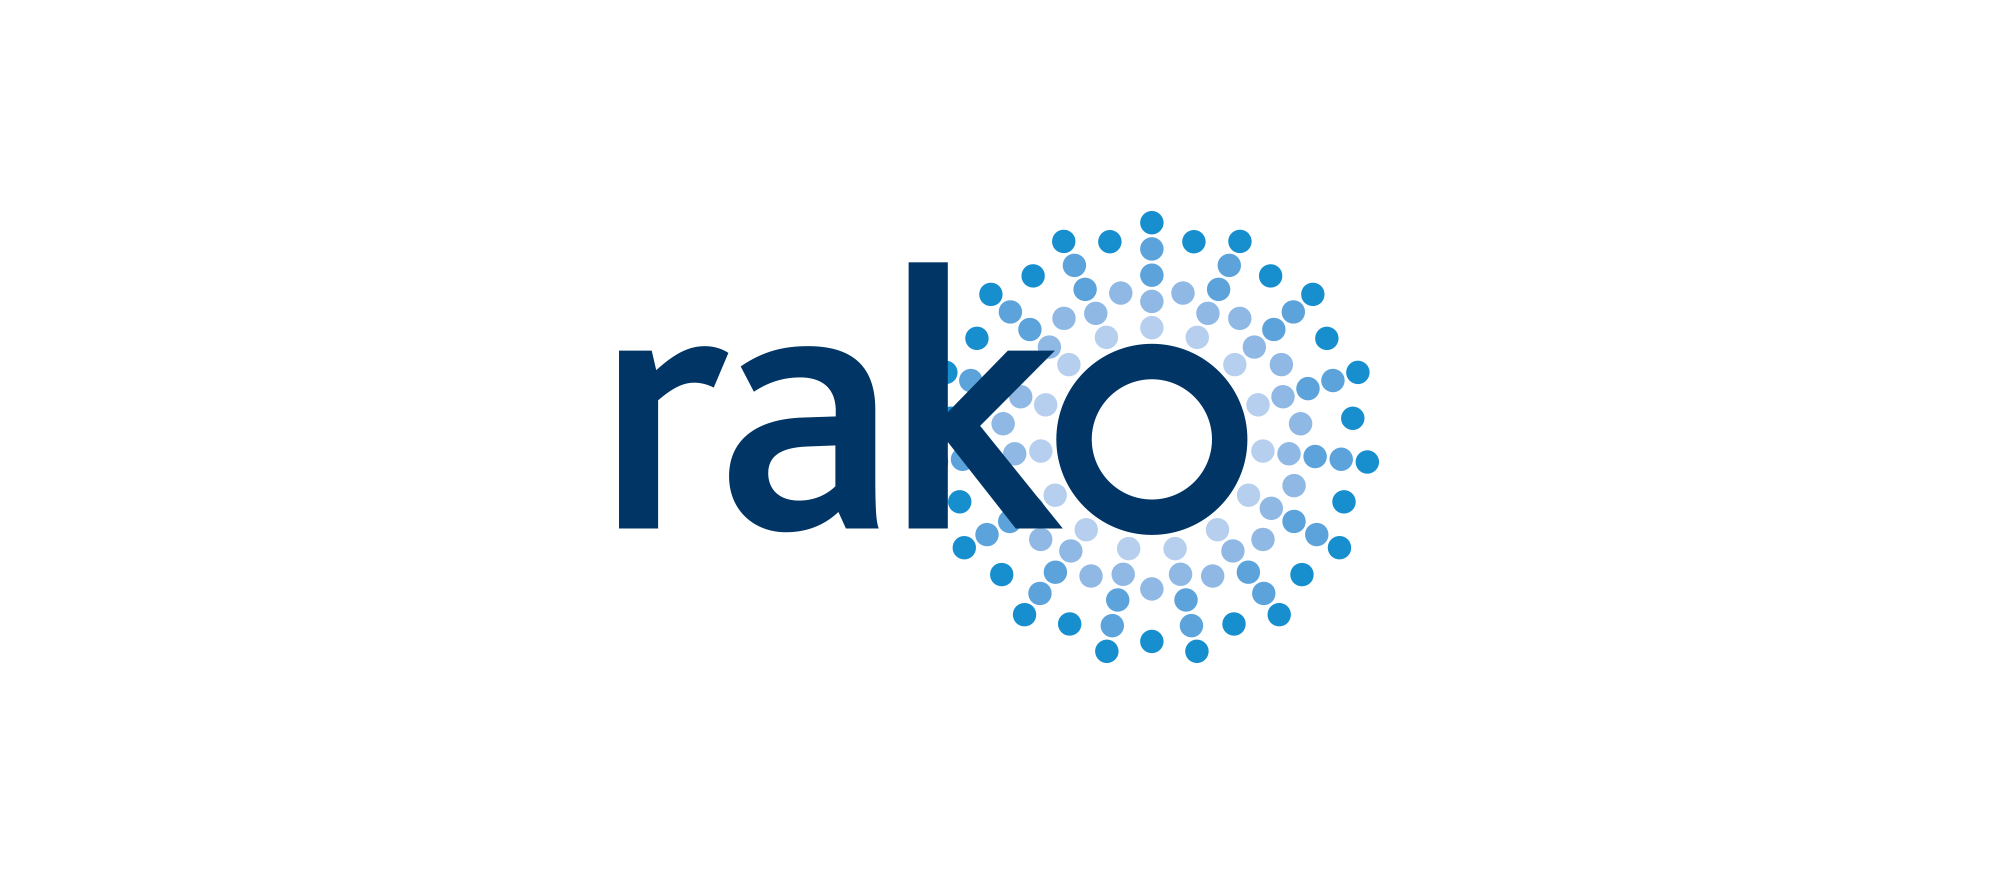 RAKO - Rako is leading the way in providing state-of-the-art digital dimming technology.